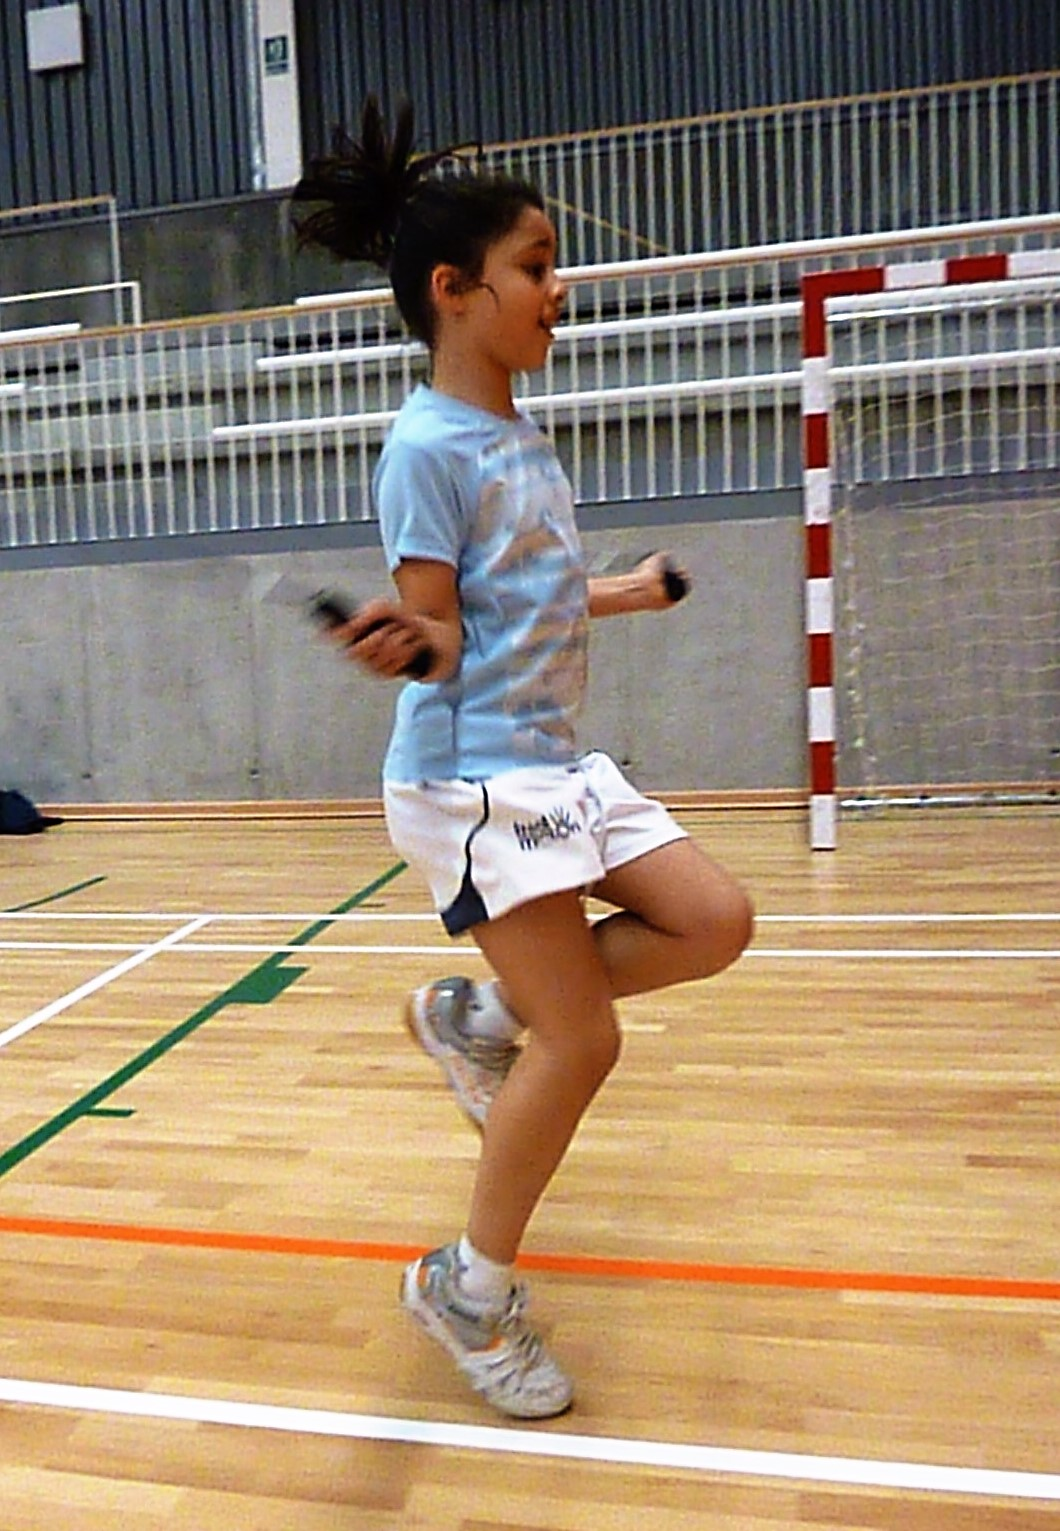 Badminton skipping Julia - 6 Ways to use your skipping rope